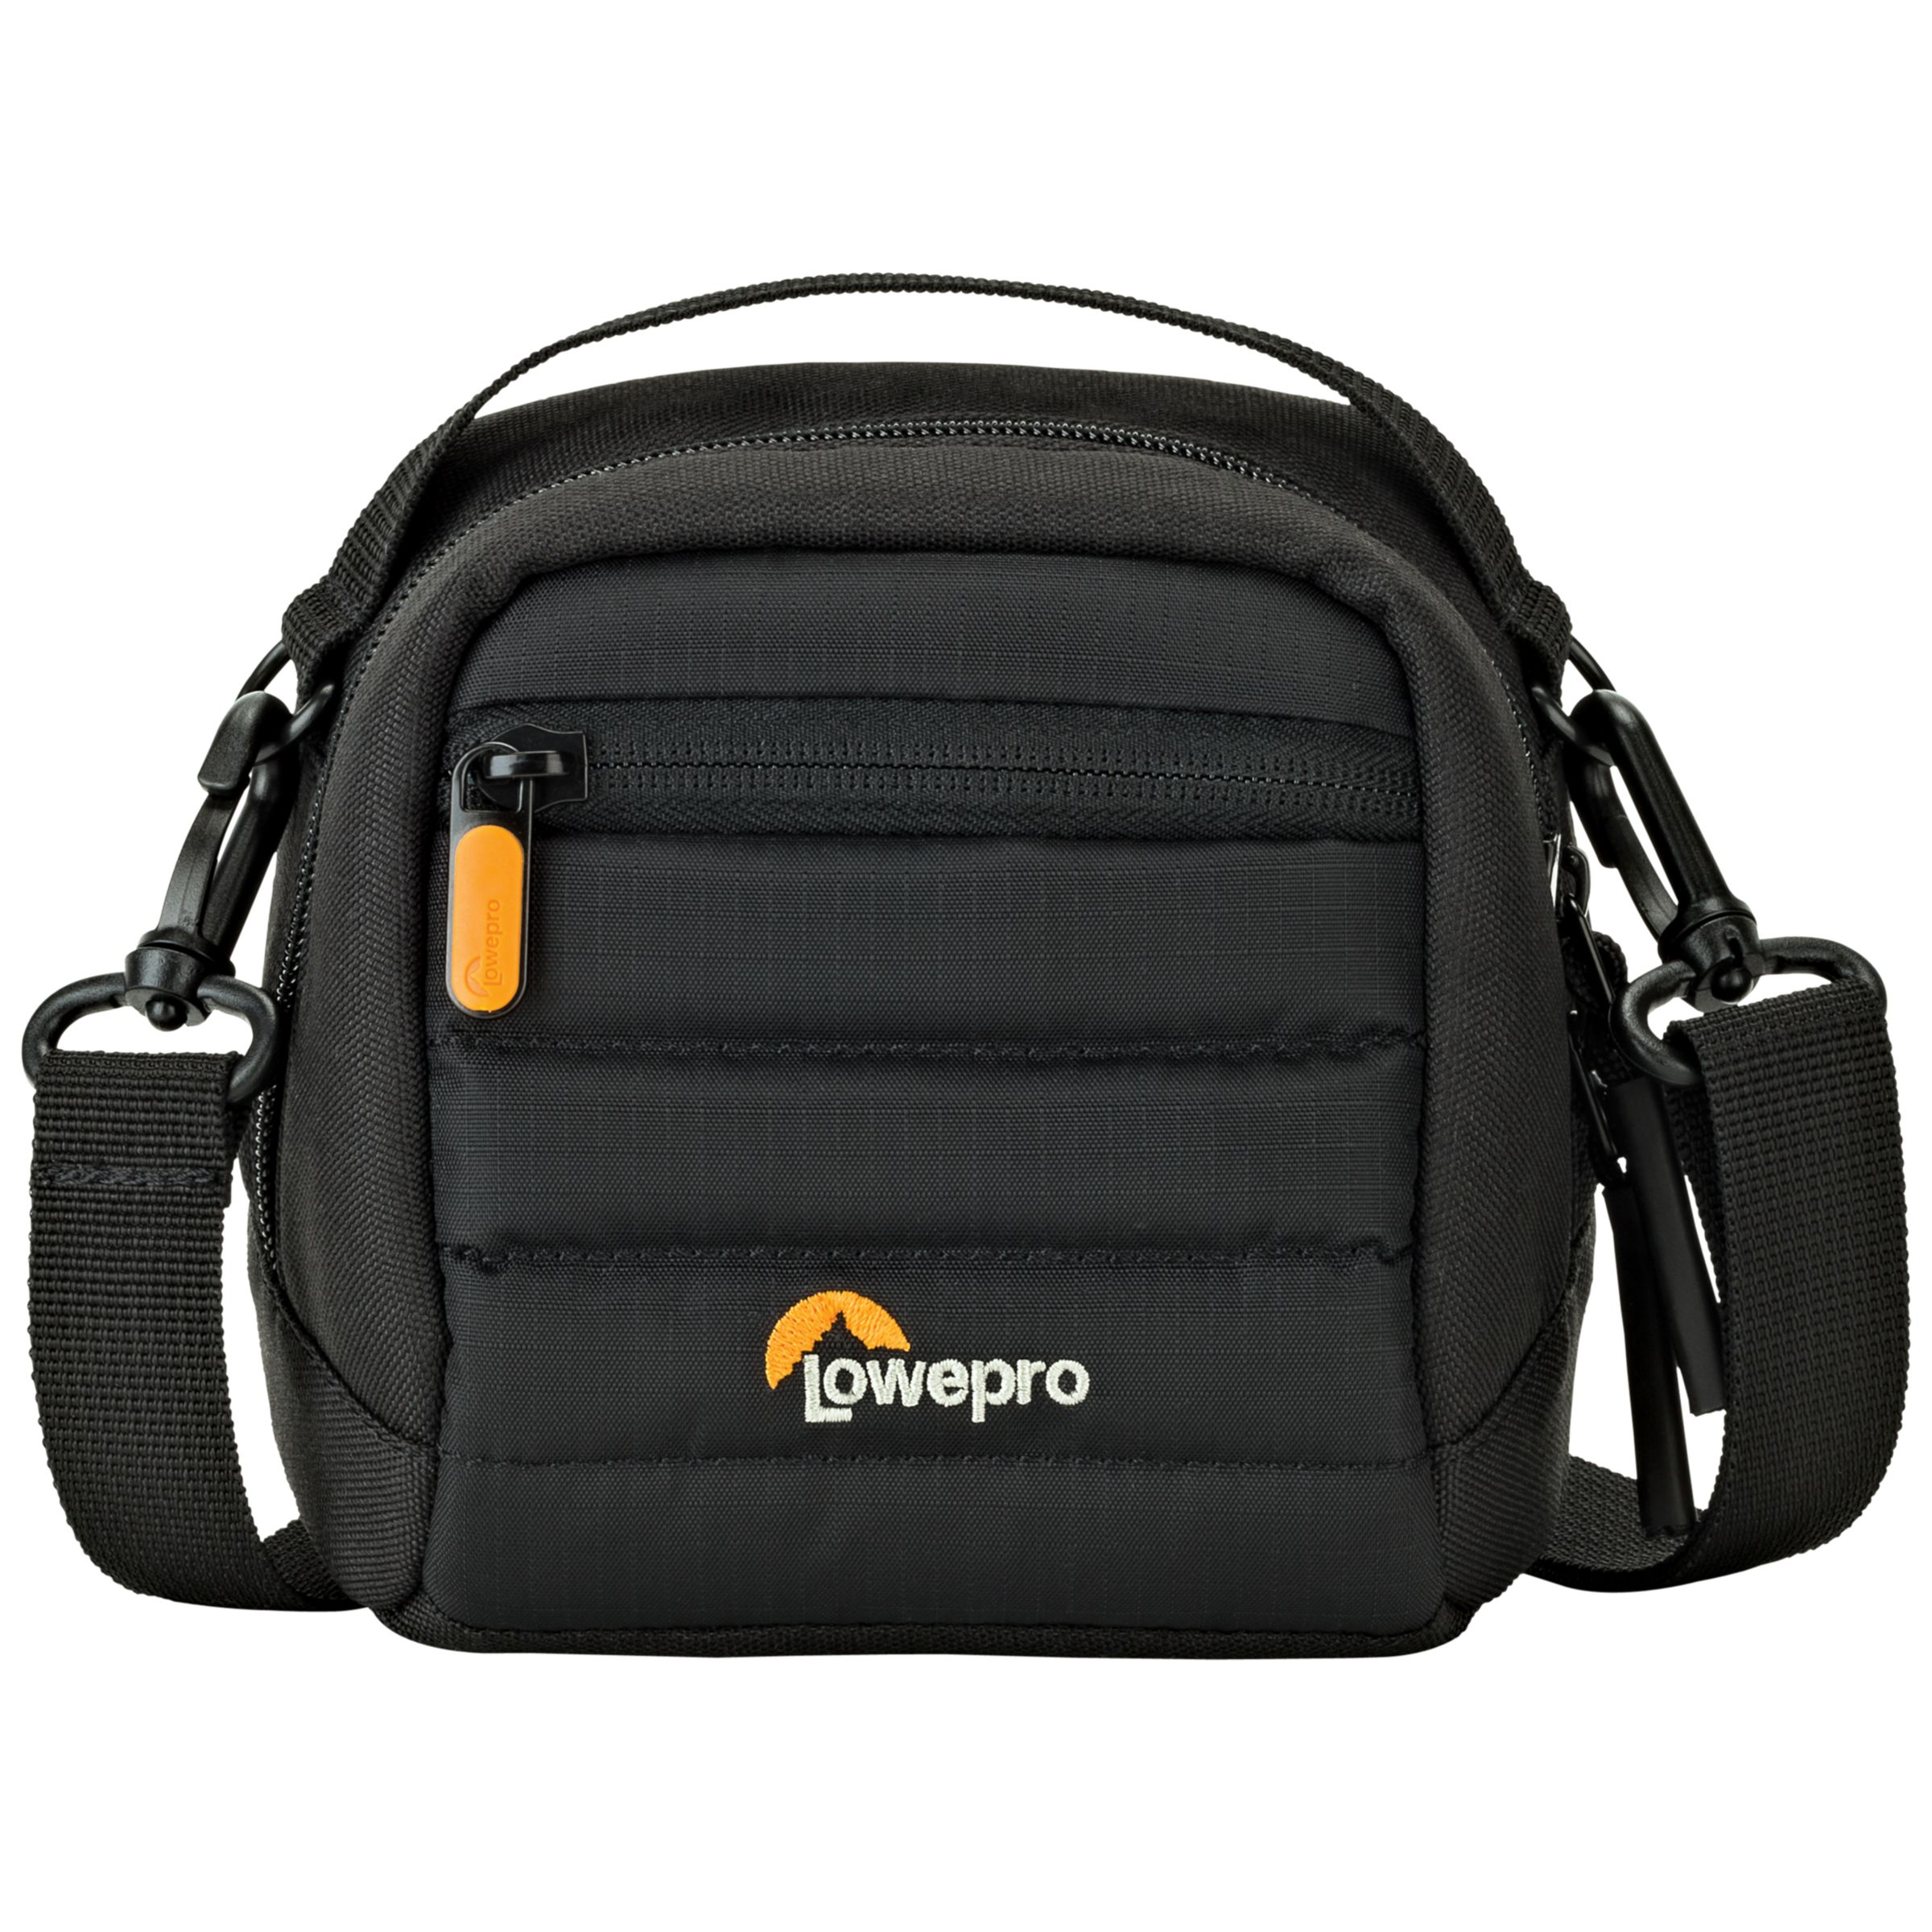 Lowepro Lowepro Tahoe CS 80 Camera Case